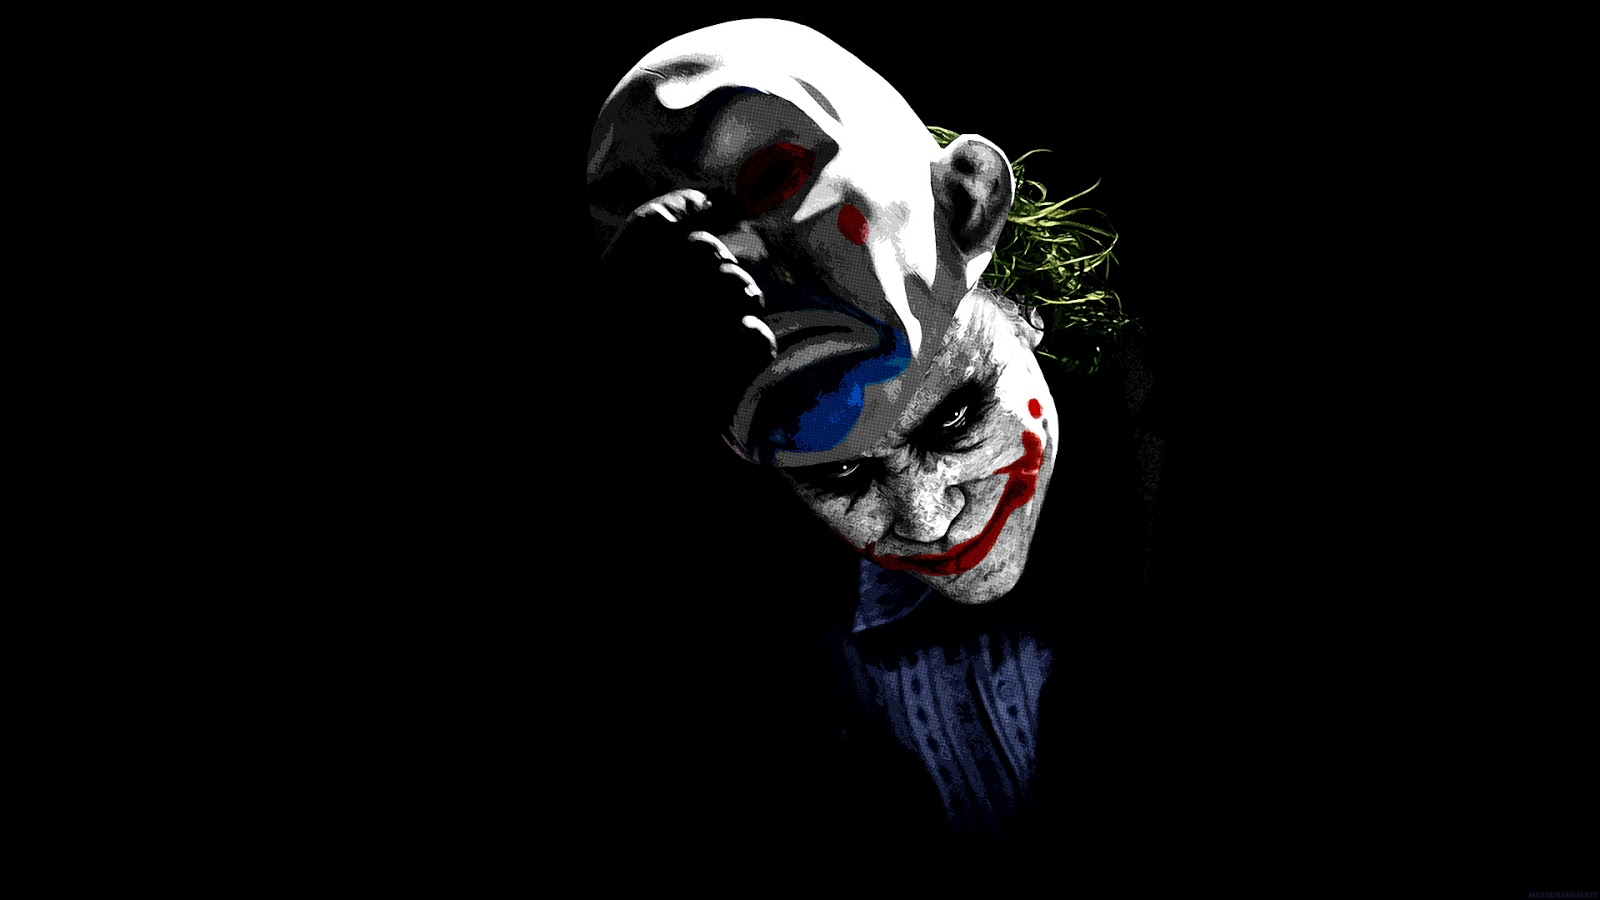 joker wallpaper download joker pictures 1600x900